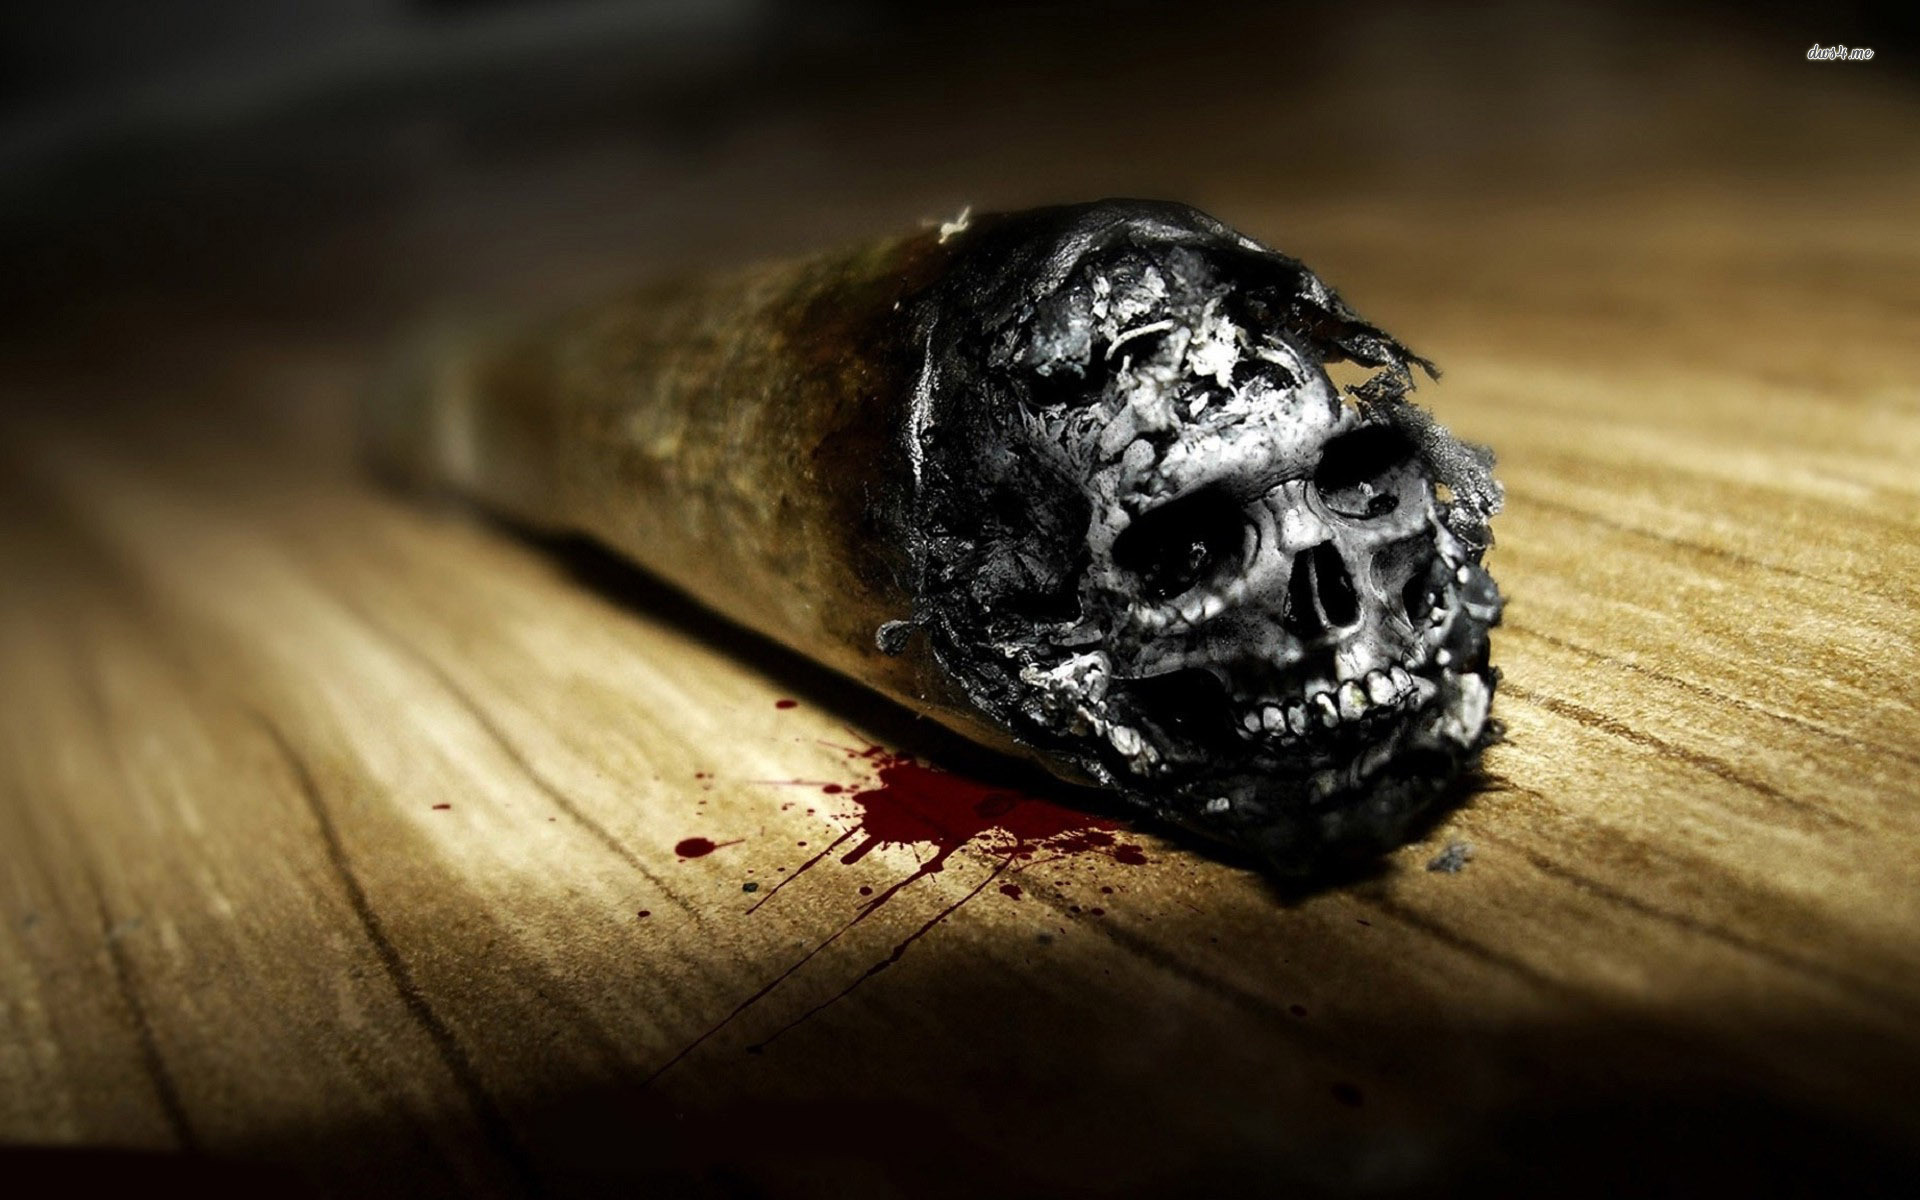 Sick Wallpapers For Iphone 6 Skull Hd Wallpaper Background Image 1920x1200 Id